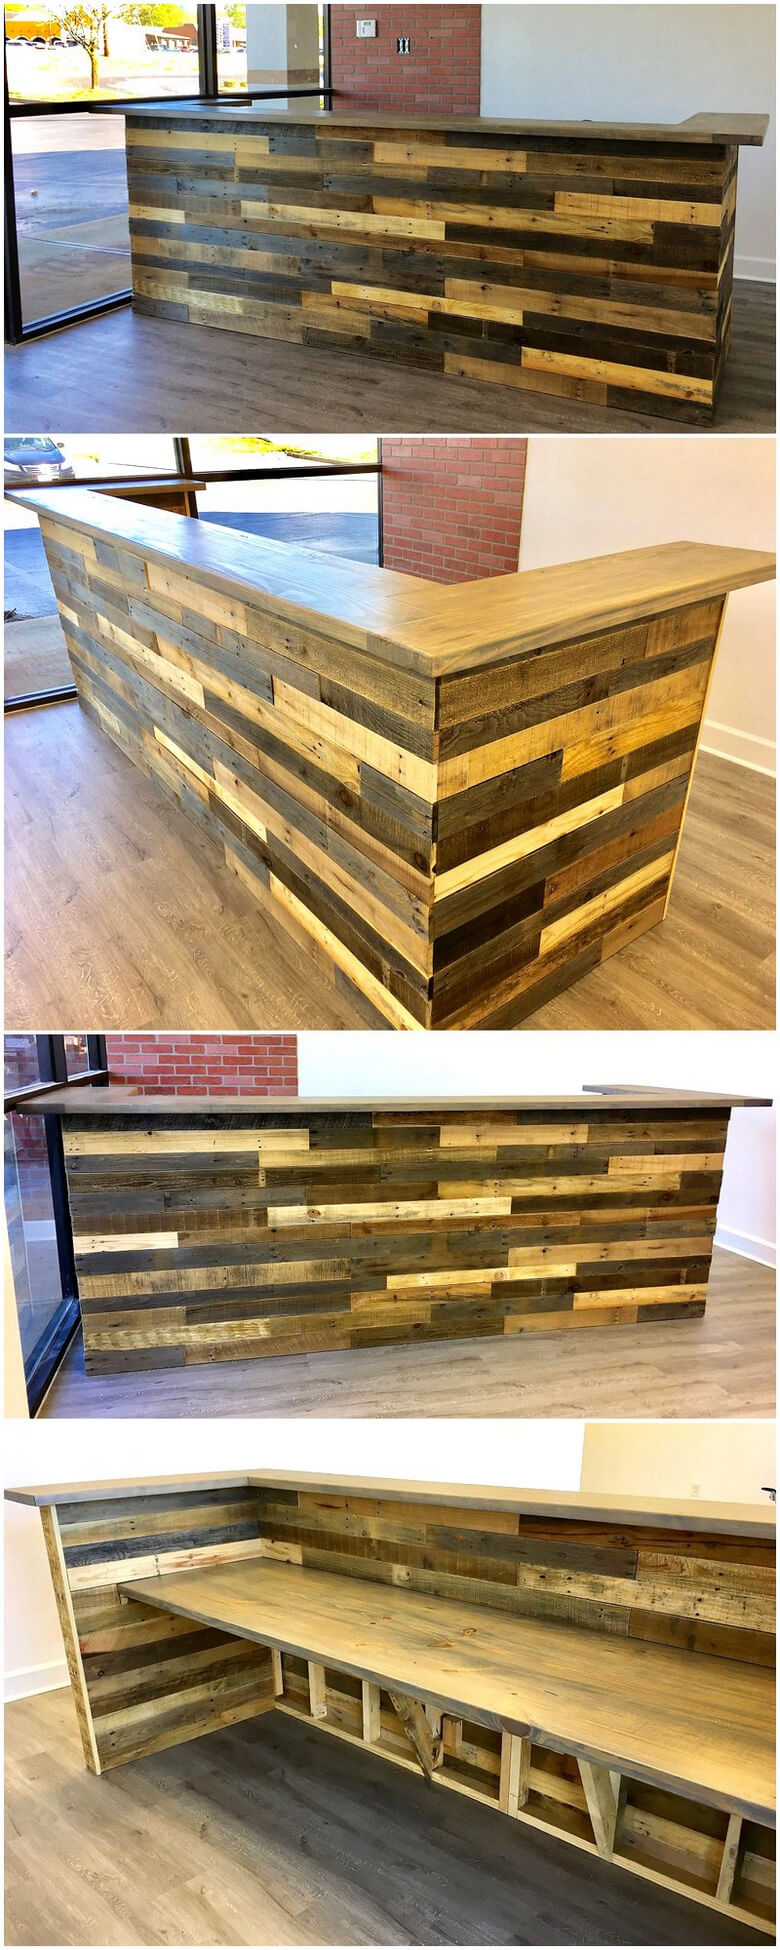 Really Functional Creations With Wood Pallets Wood